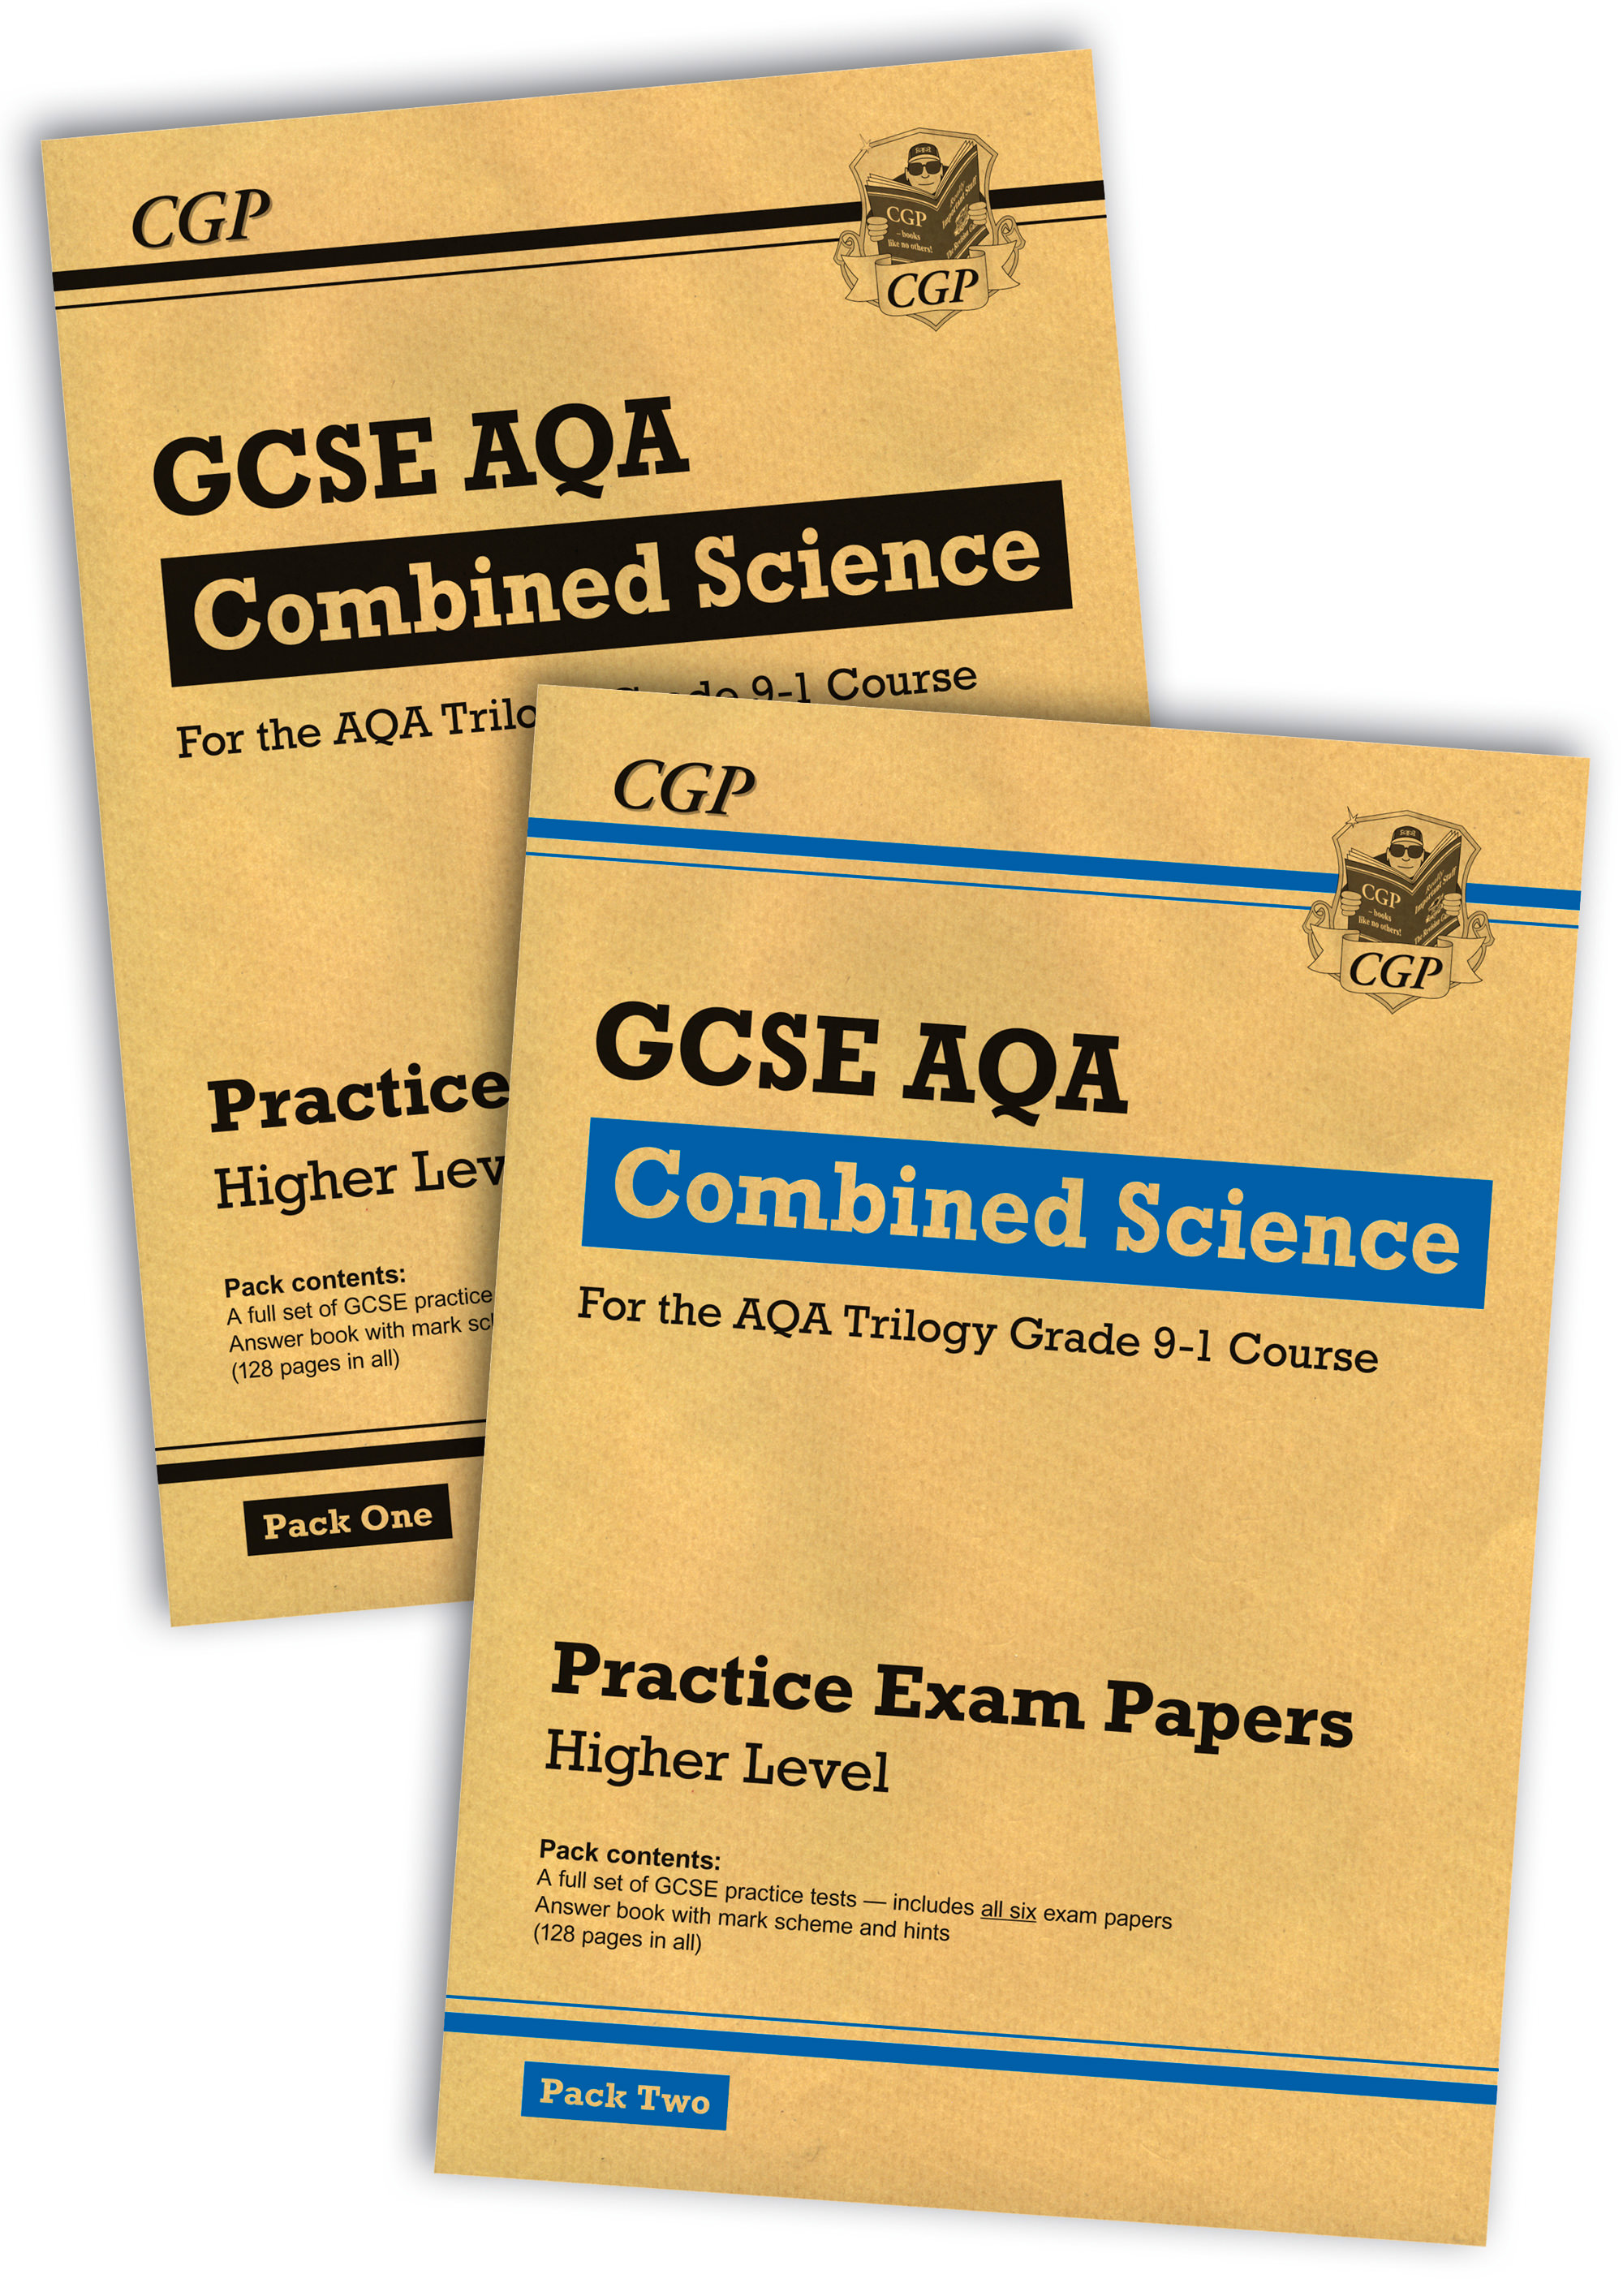 SAHBP41 - New Grade 9-1 GCSE Combined Science AQA Practice Papers: Higher Pack 1 & 2 Bundle